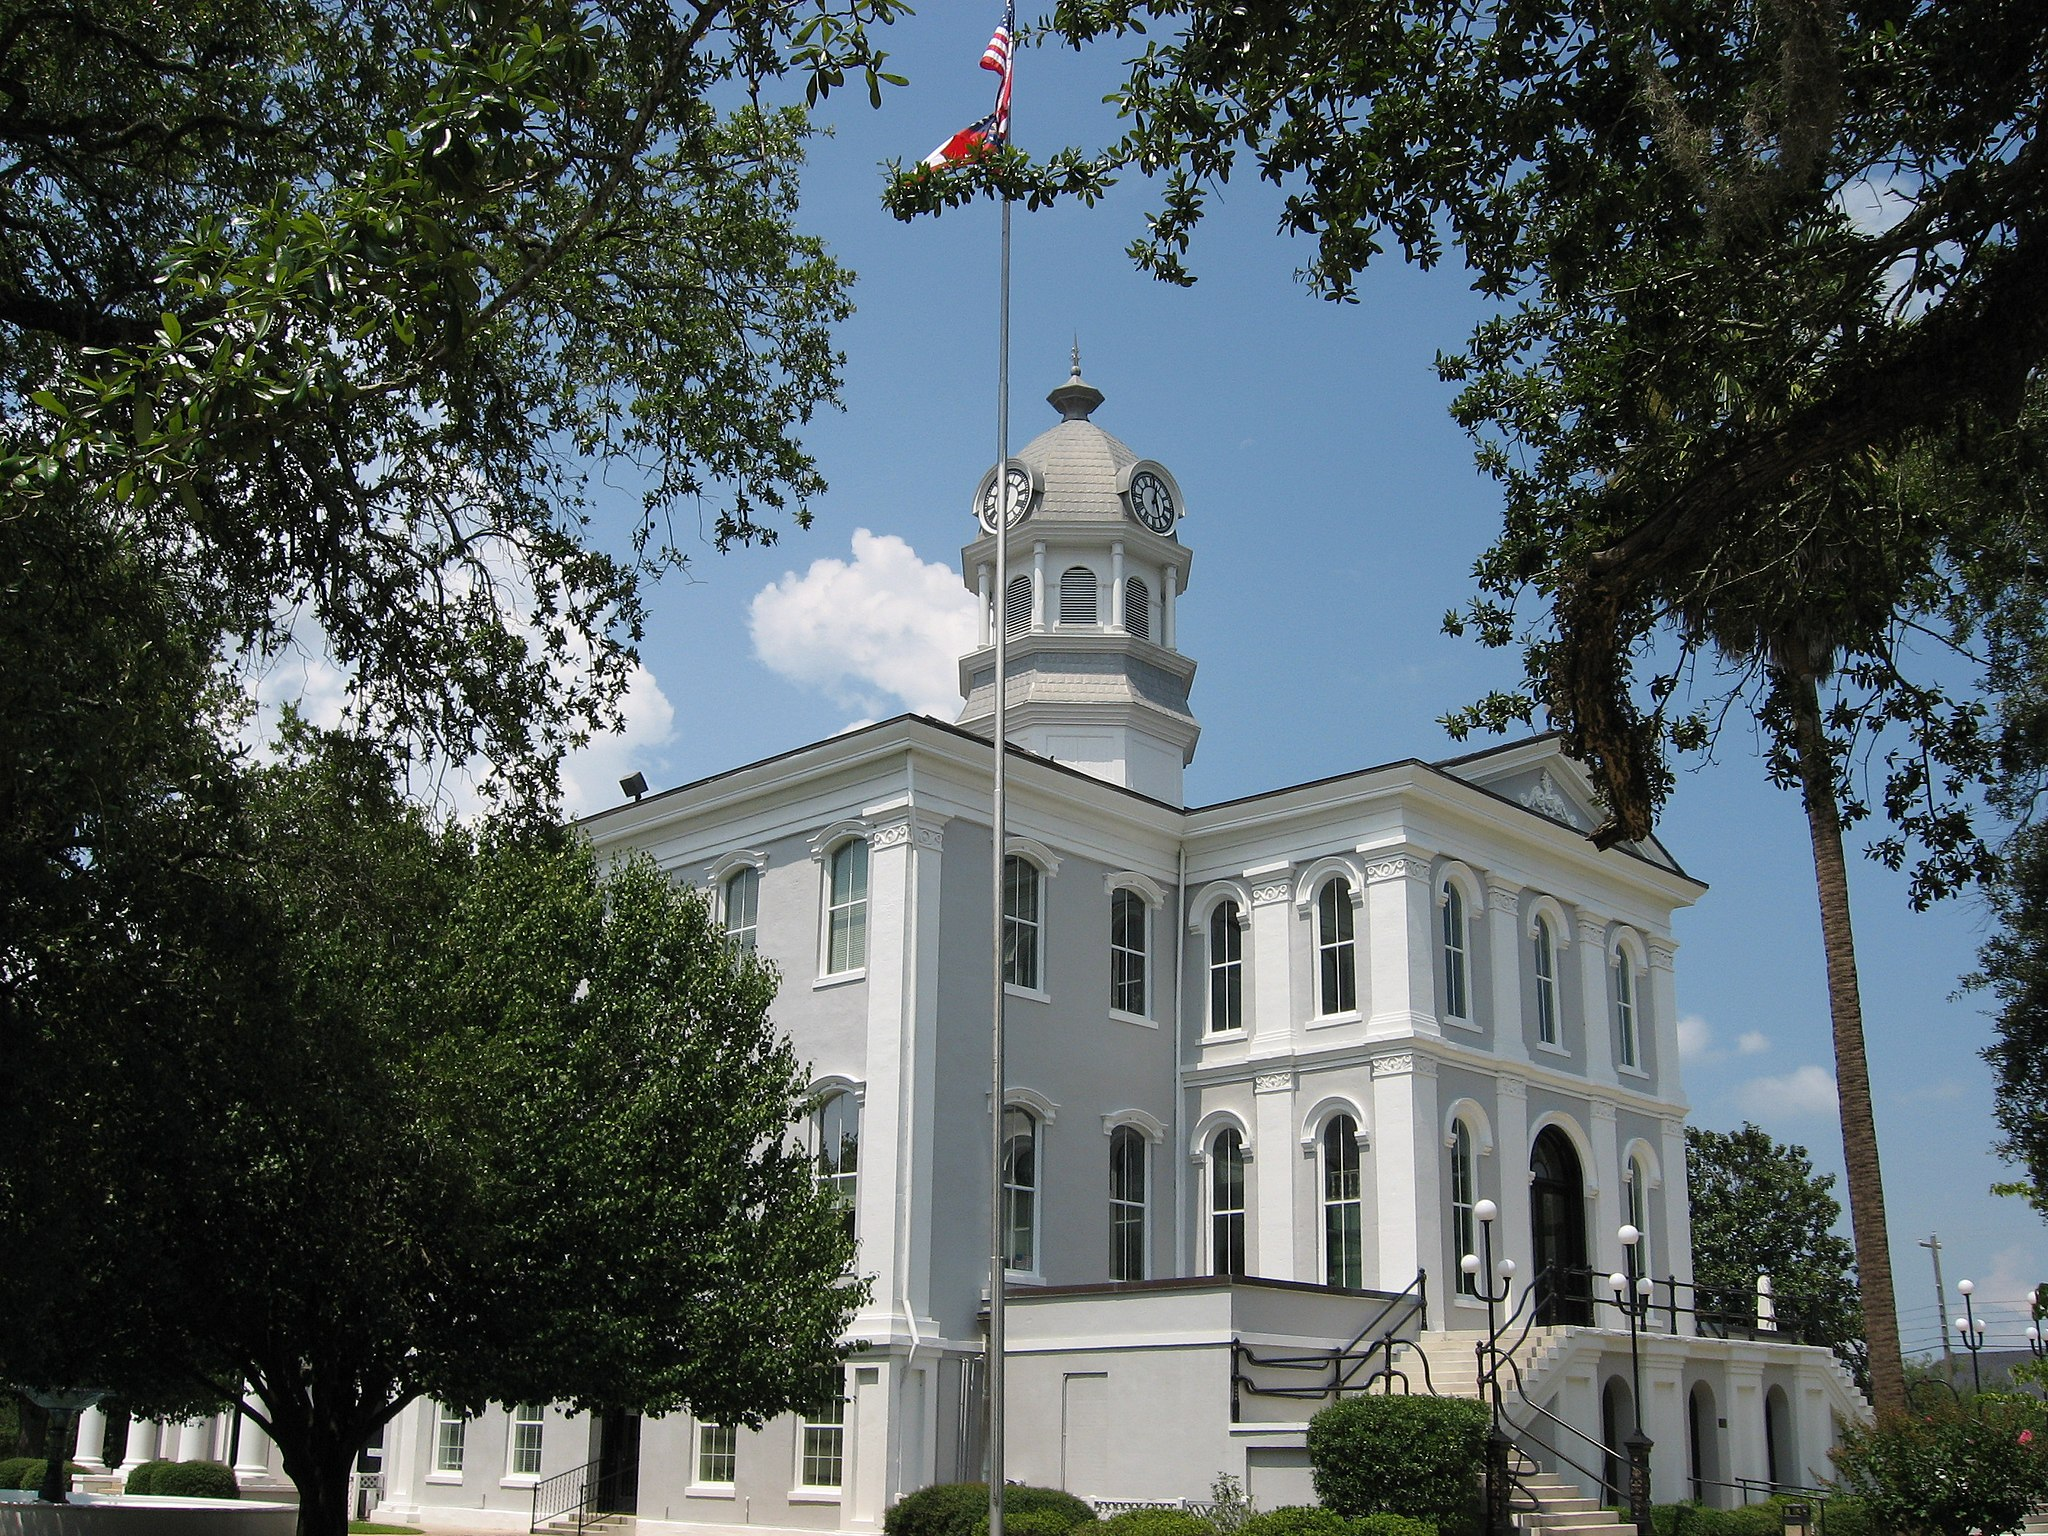 Thomas County Courthouse